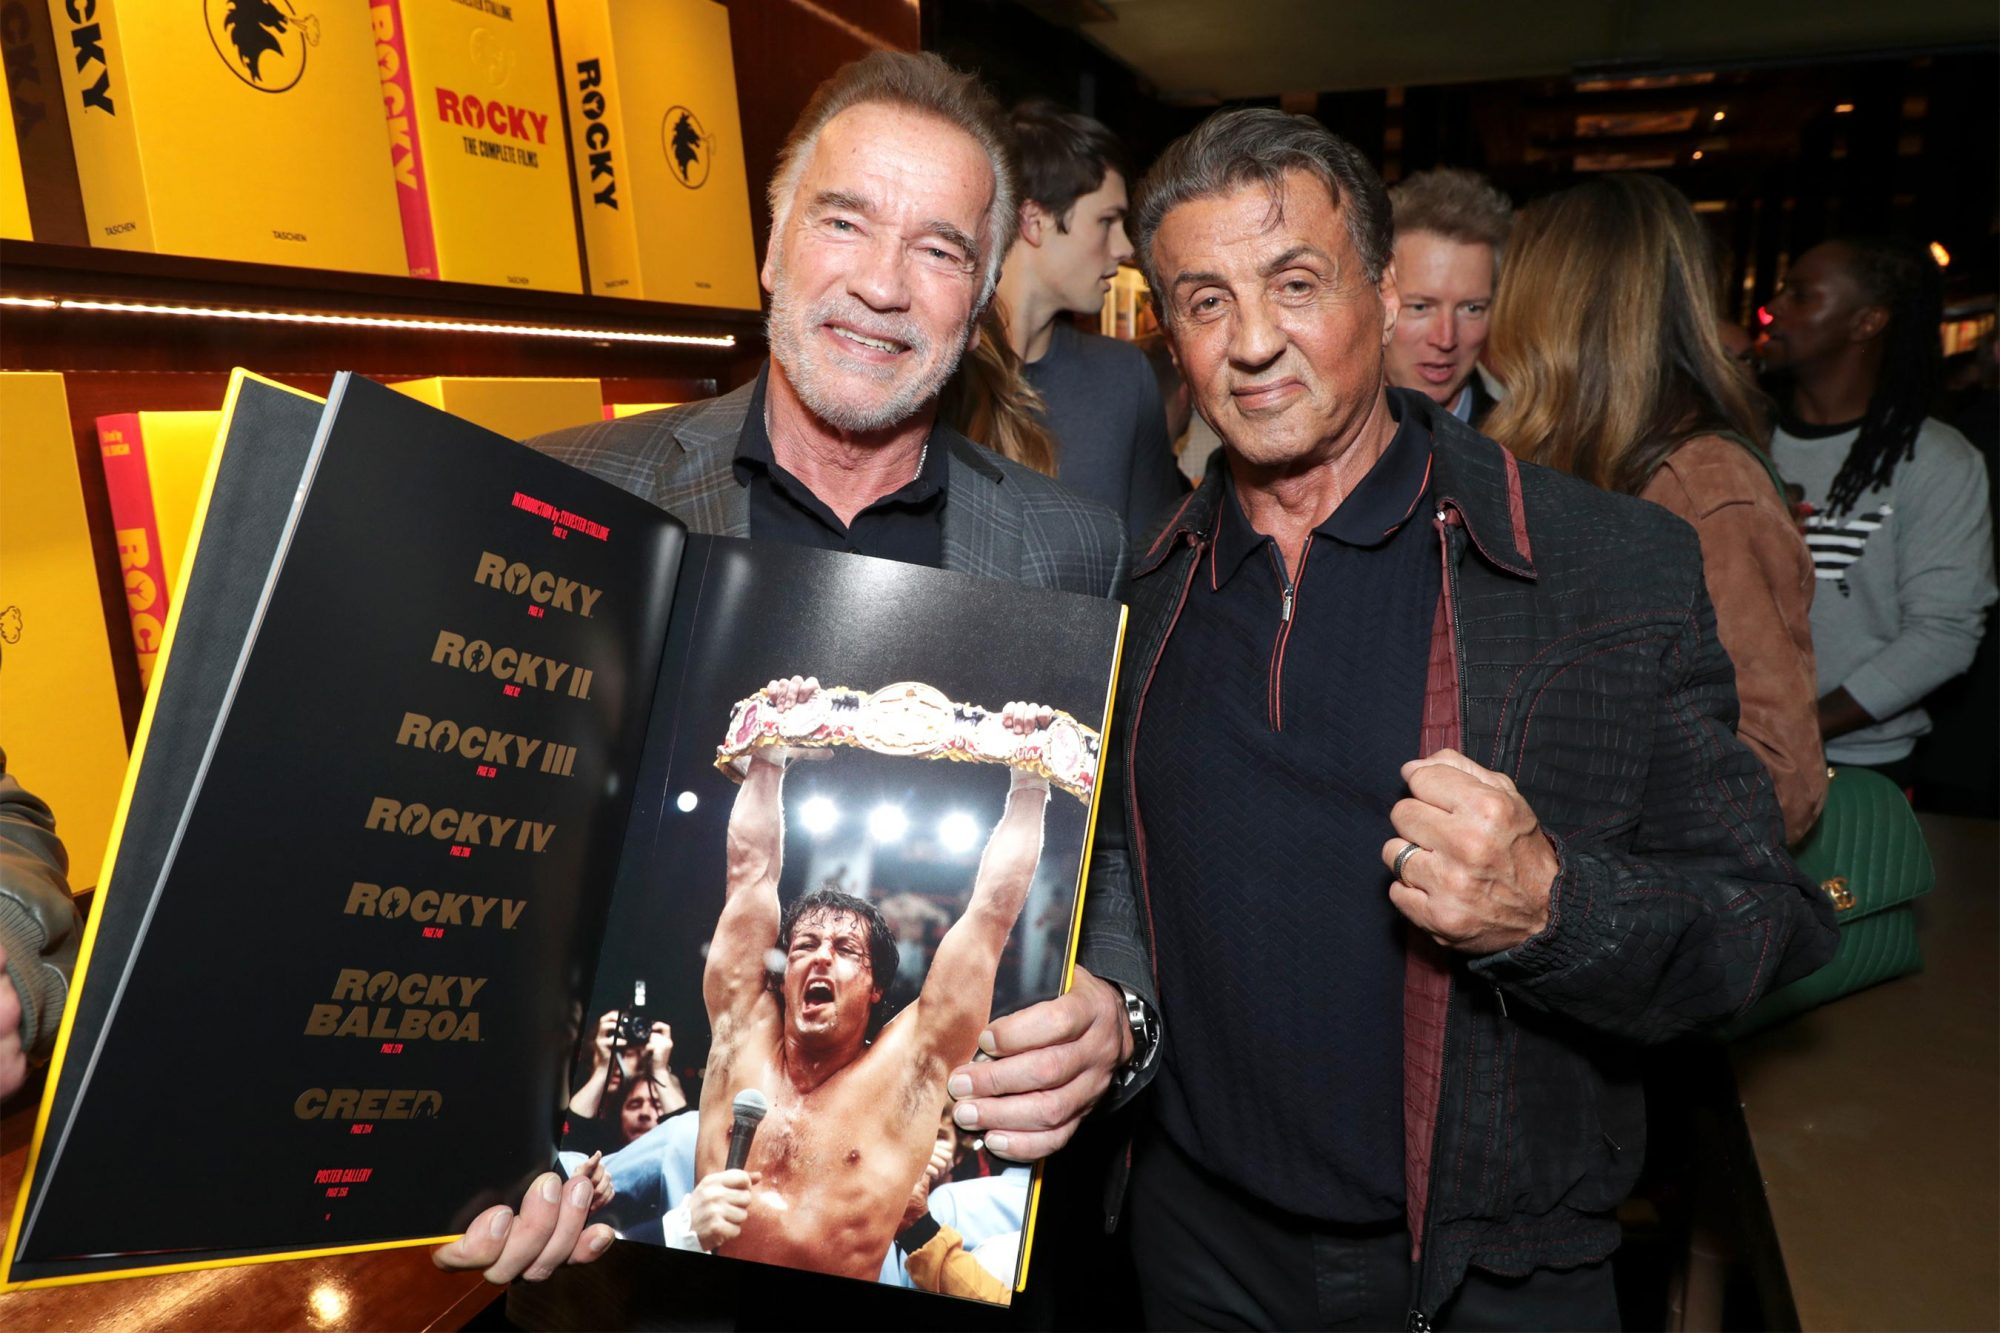 Launch of 'Rocky. The Complete Films' at TASCHEN Beverly Hills, Beverly Hills, USA - 11 December 2018